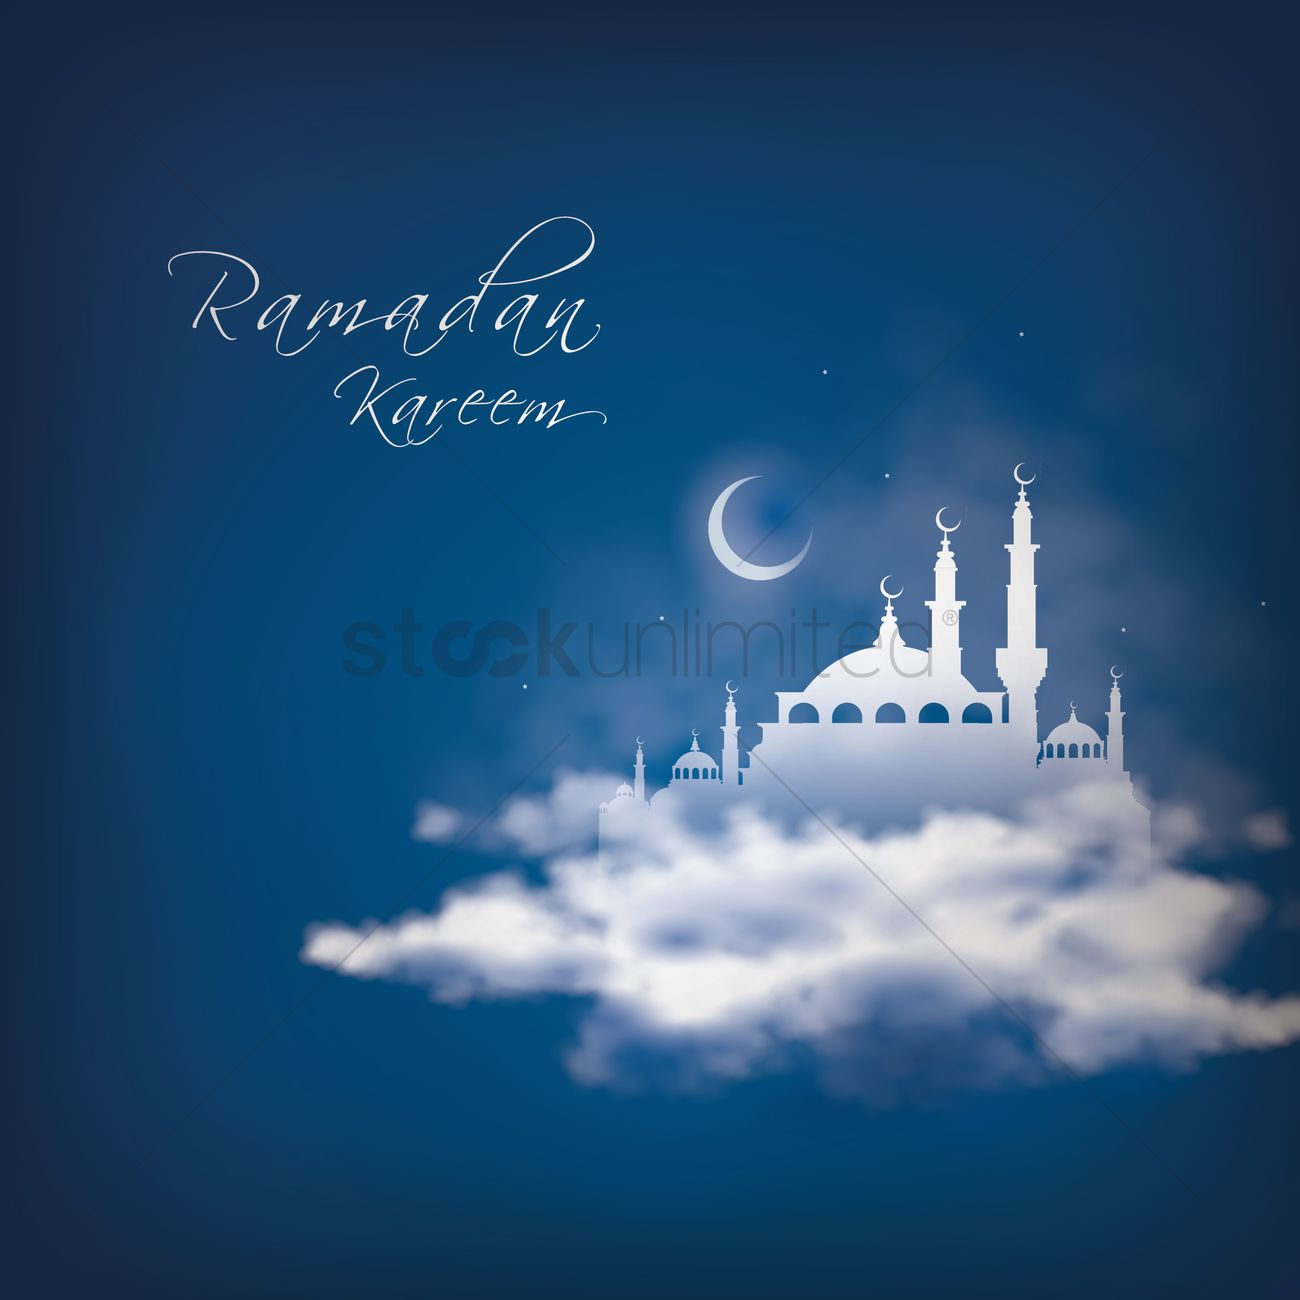 Ramadan Kareem Greeting Vector Image 1826927 Stockunlimited